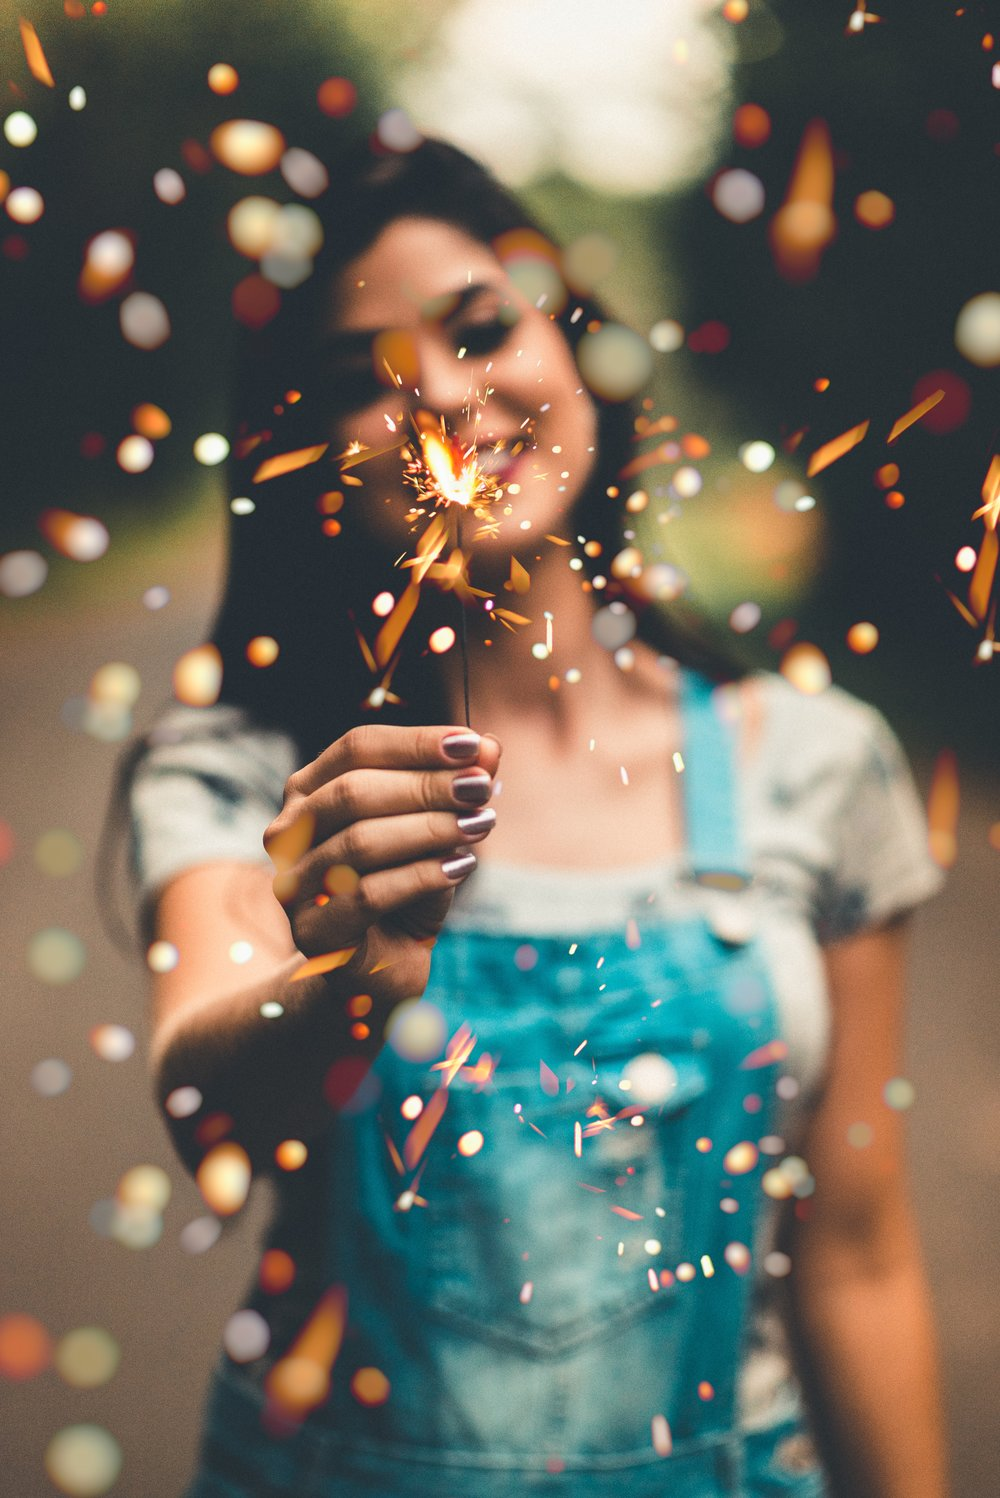 Celebration for New Year's. Photo by Murilo Folgosi on Pexels.